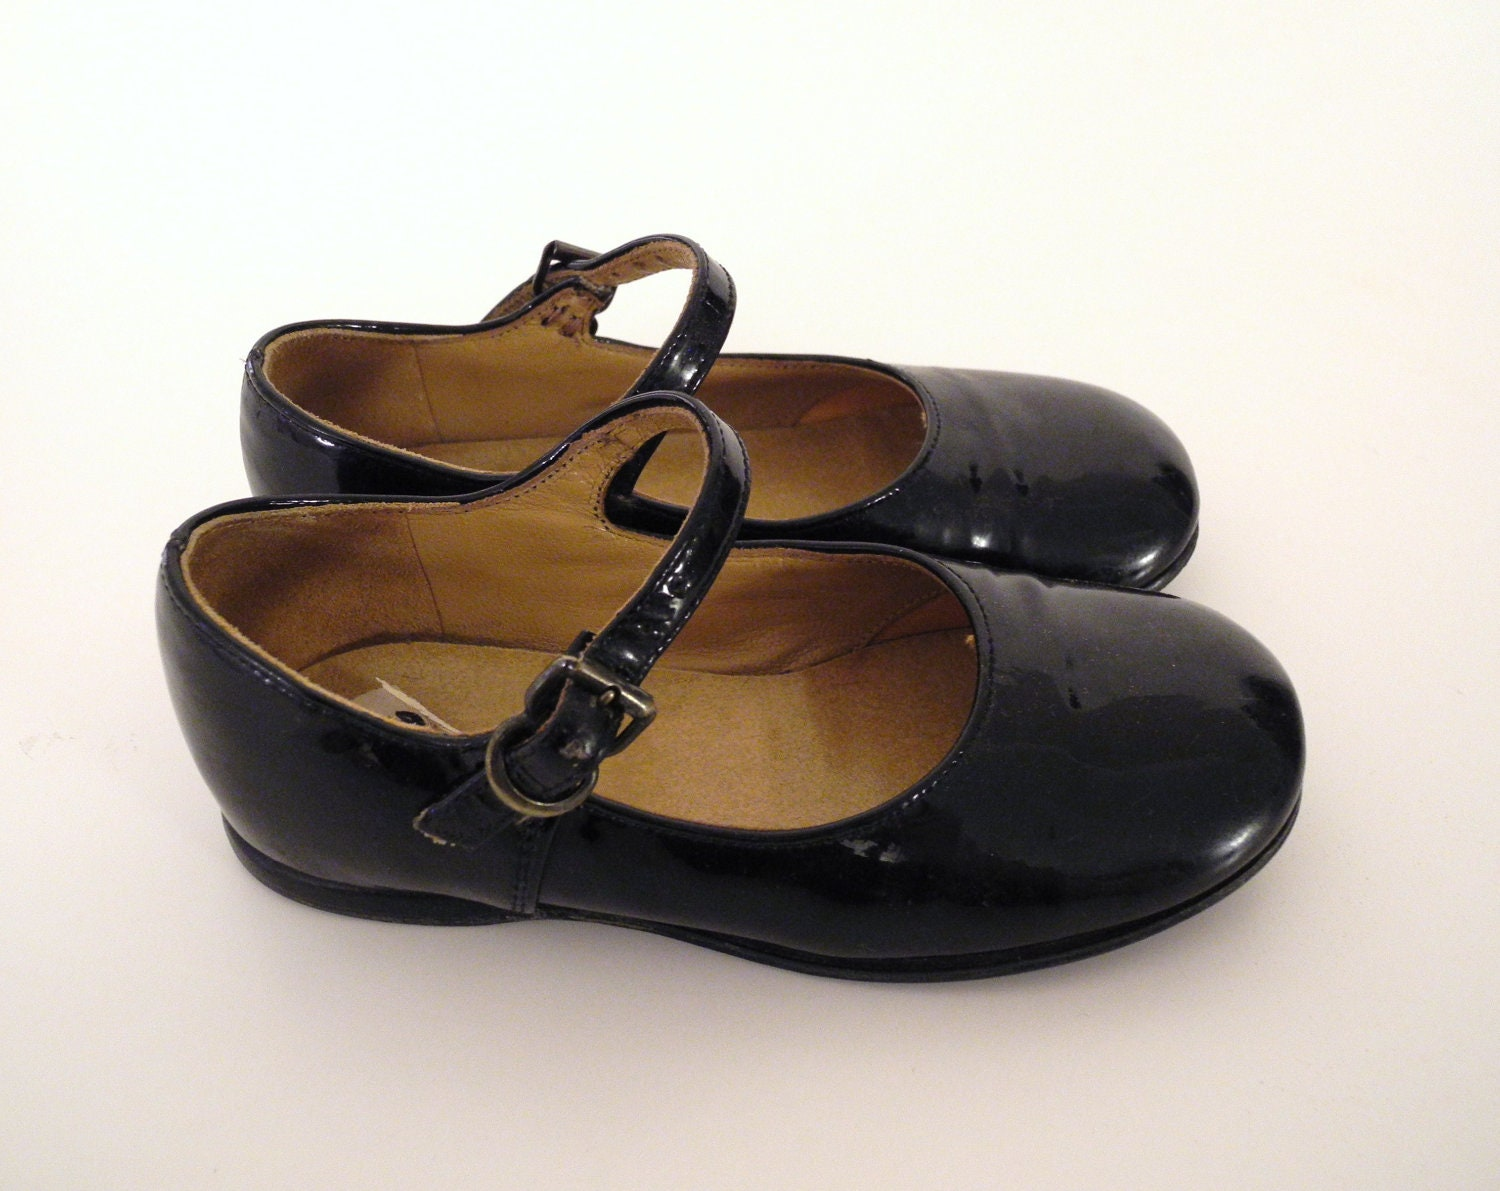 Vintage Baby Shoes Black Patent Leather Mary Jane